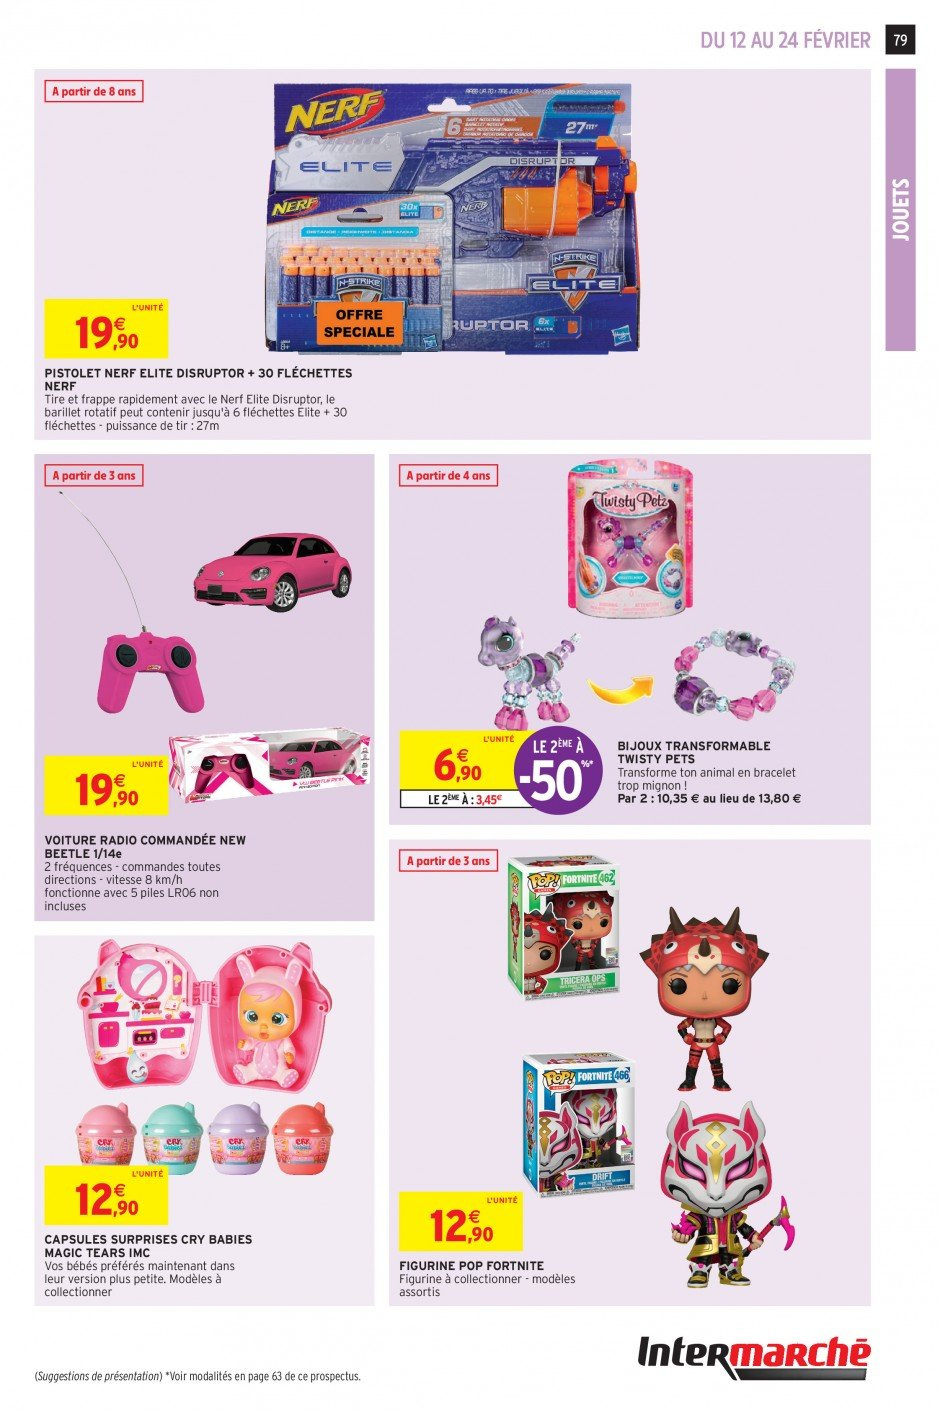 Catalogue Intermarché - 12.02.2019 - 24.02.2019. Page 77.